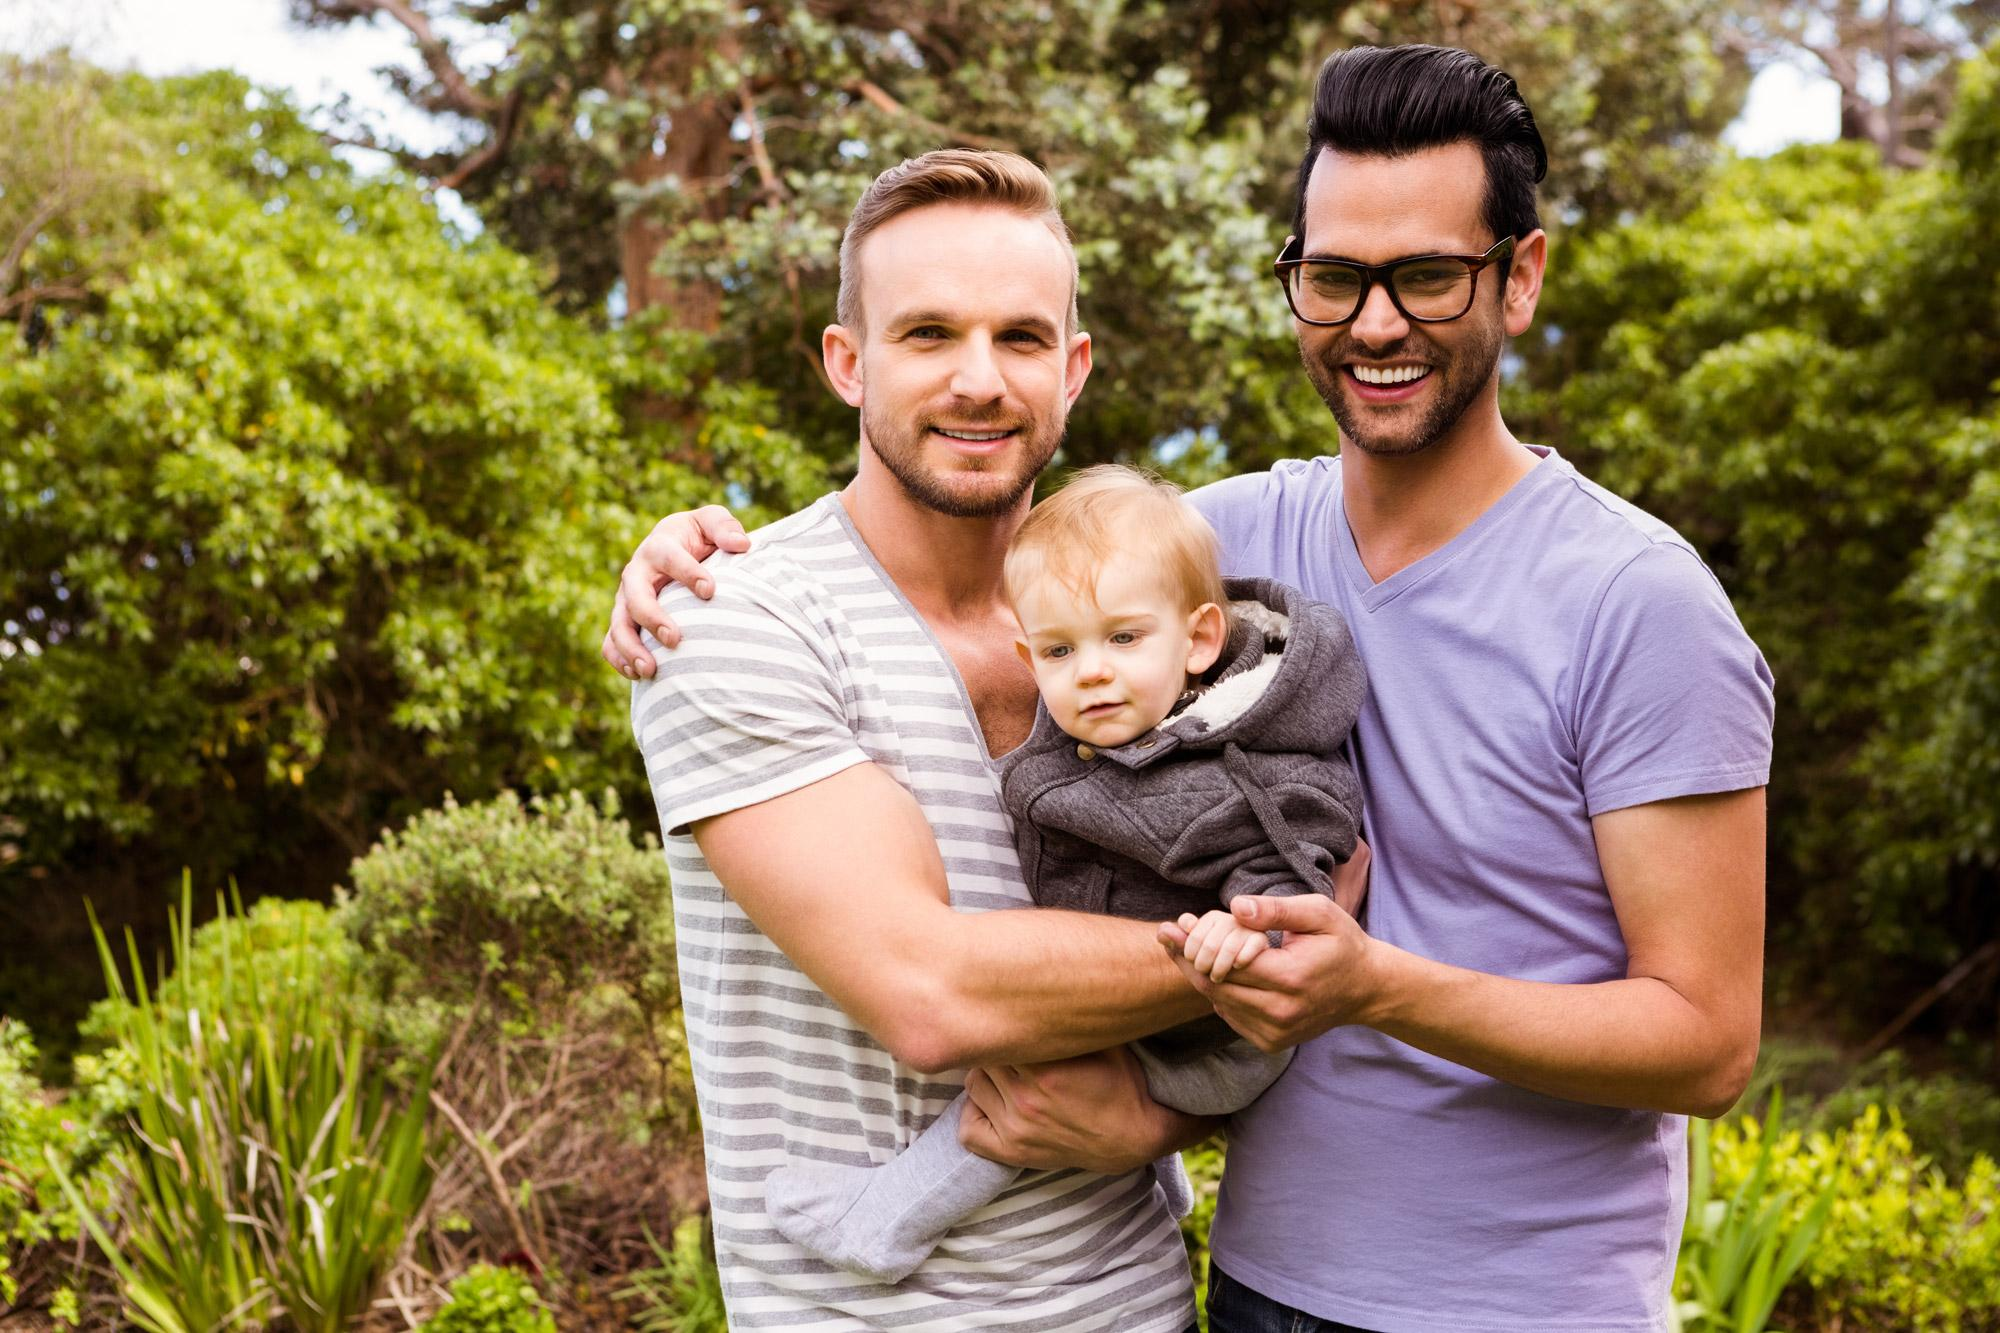 Matt and James wanted to adopt a very young child so Early Permanence Placement (EPP) seemed like the natural choice